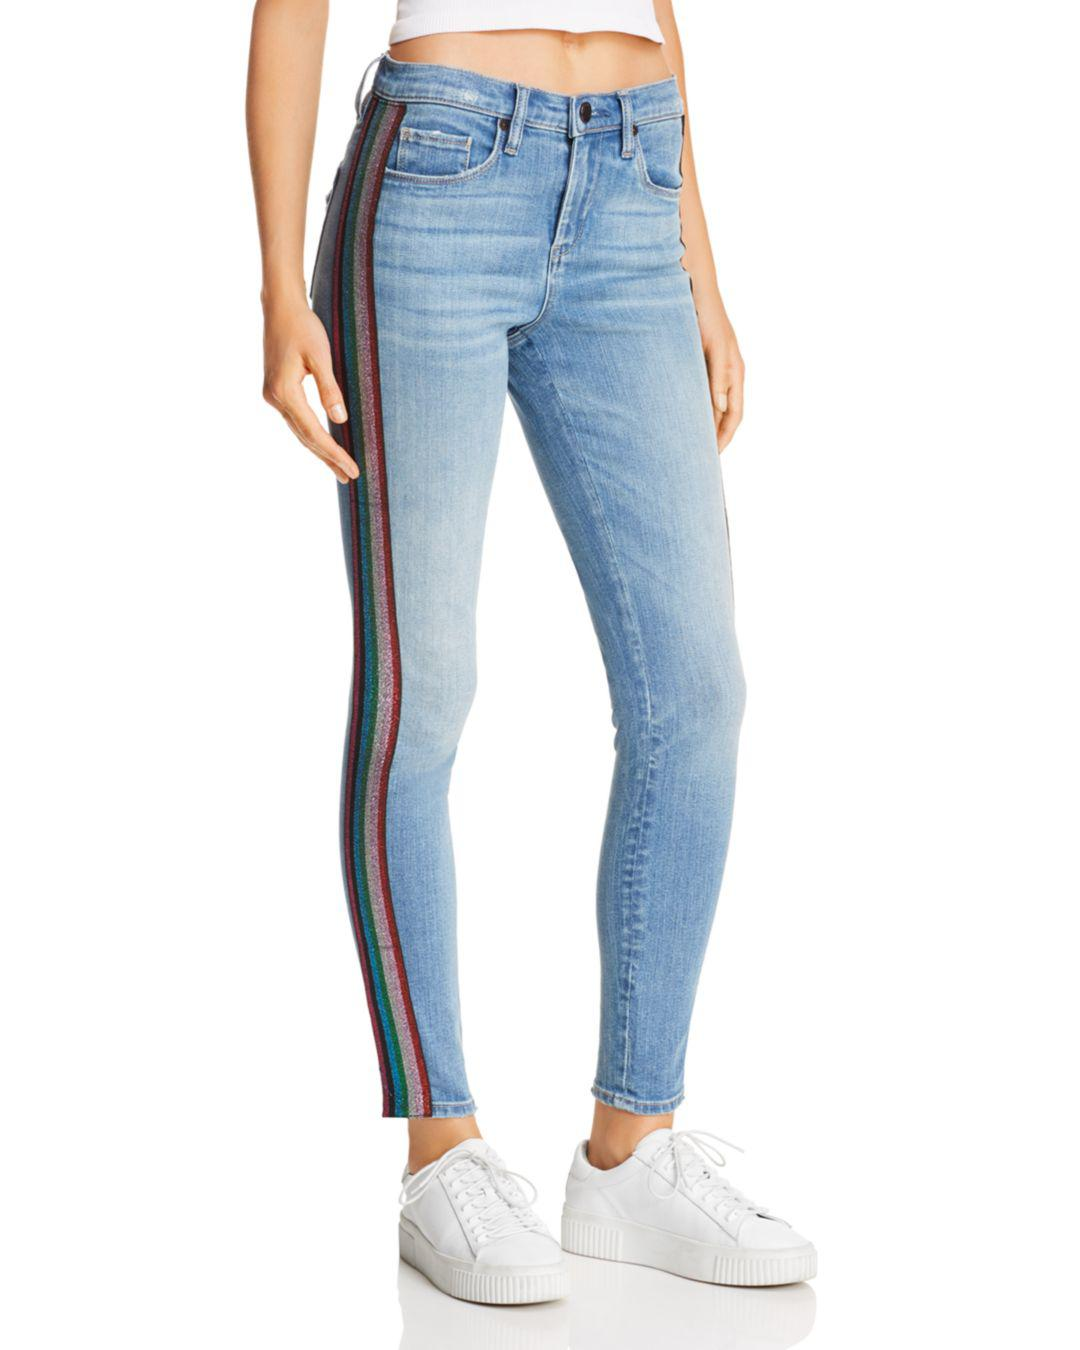 9b1589c501d Lyst - Blank NYC Glitter-striped High-rise Skinny Jeans In ...